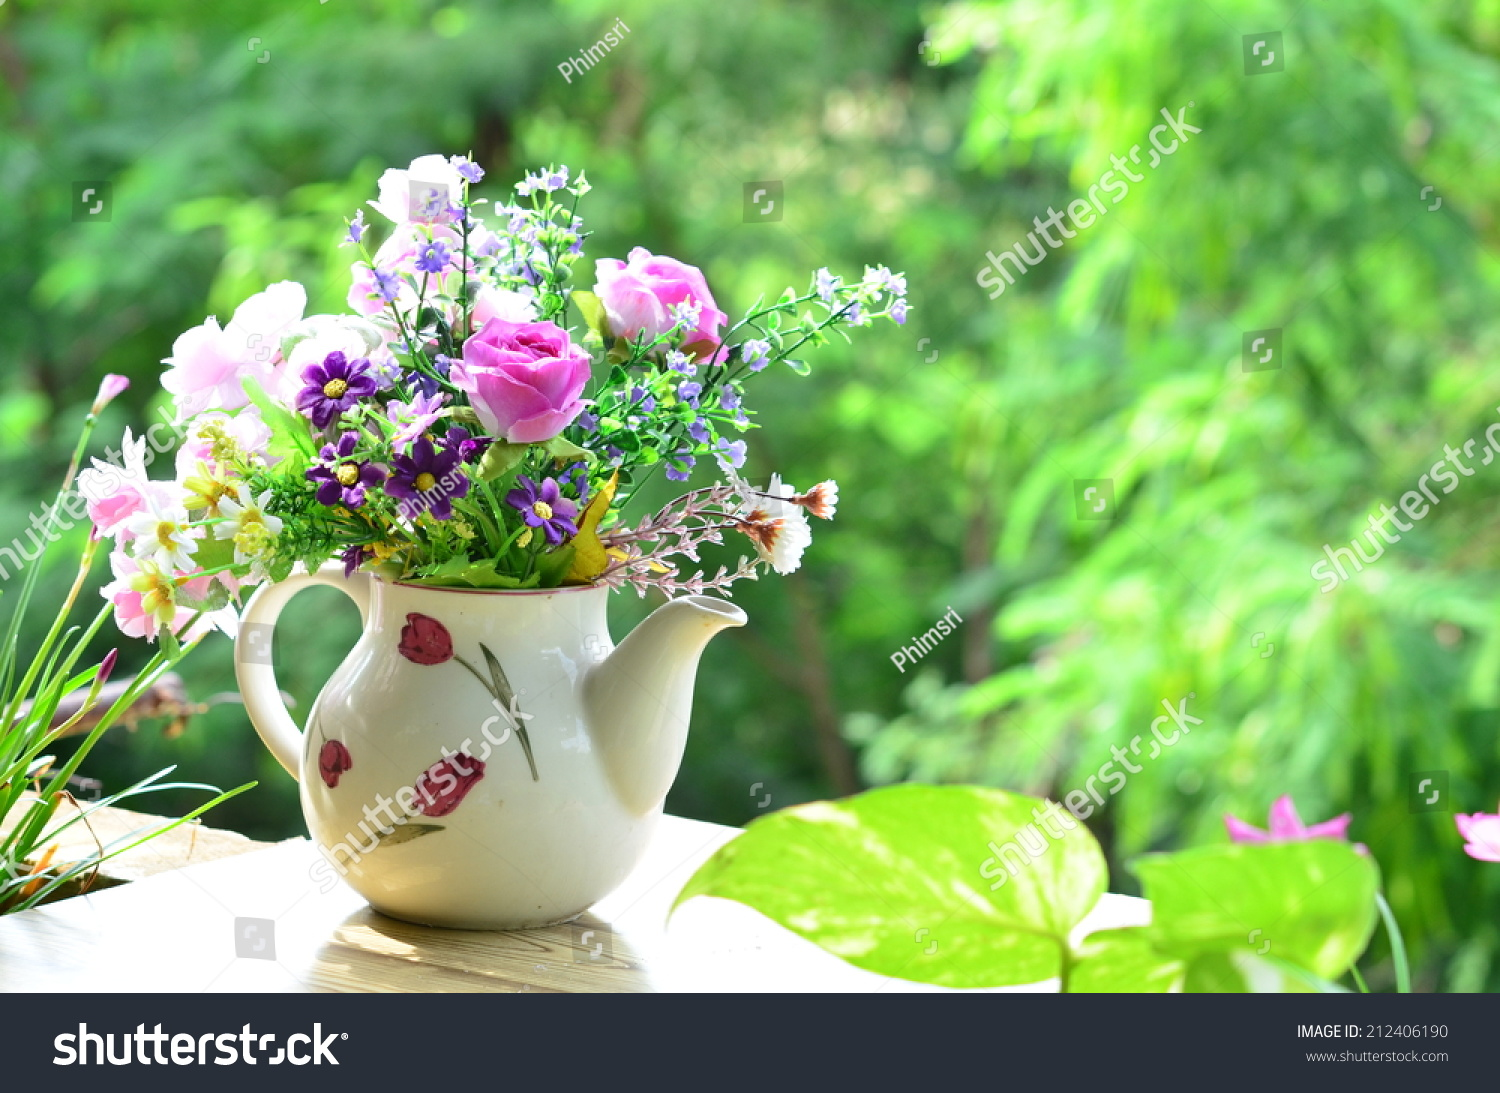 Good Morning Bouquet Flowers Stock Photo (Edit Now) 212406190 ...